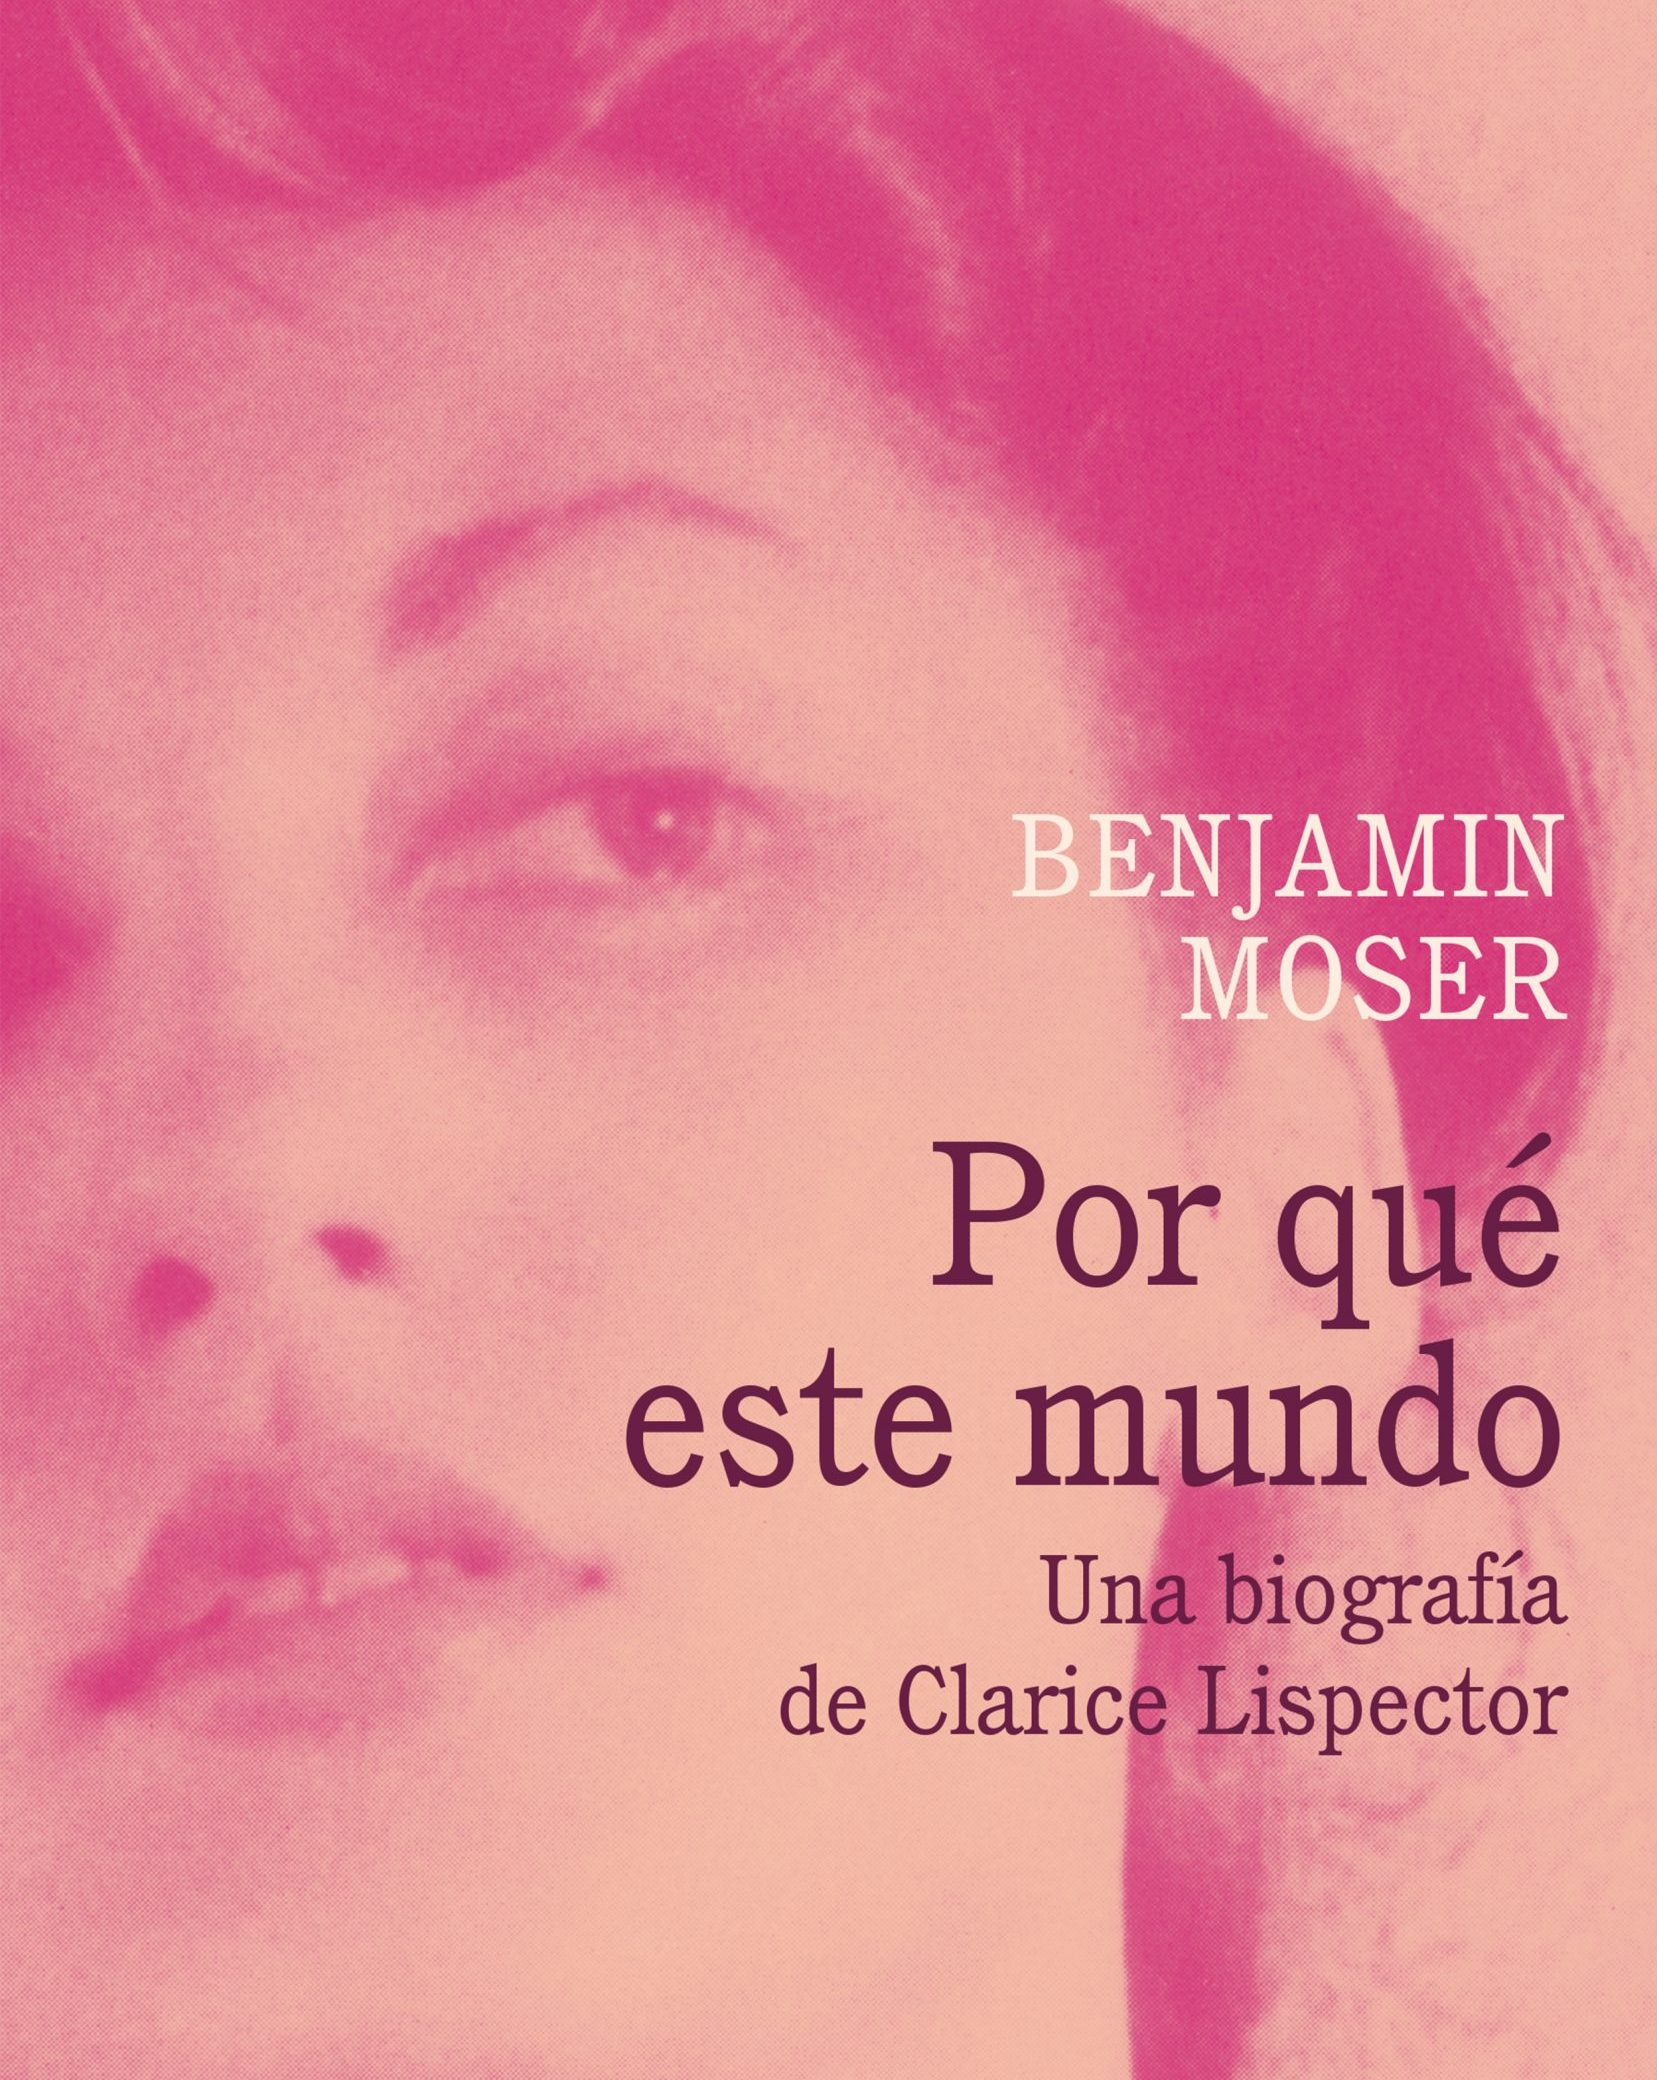 Clarice's biography now has a Spanish edition